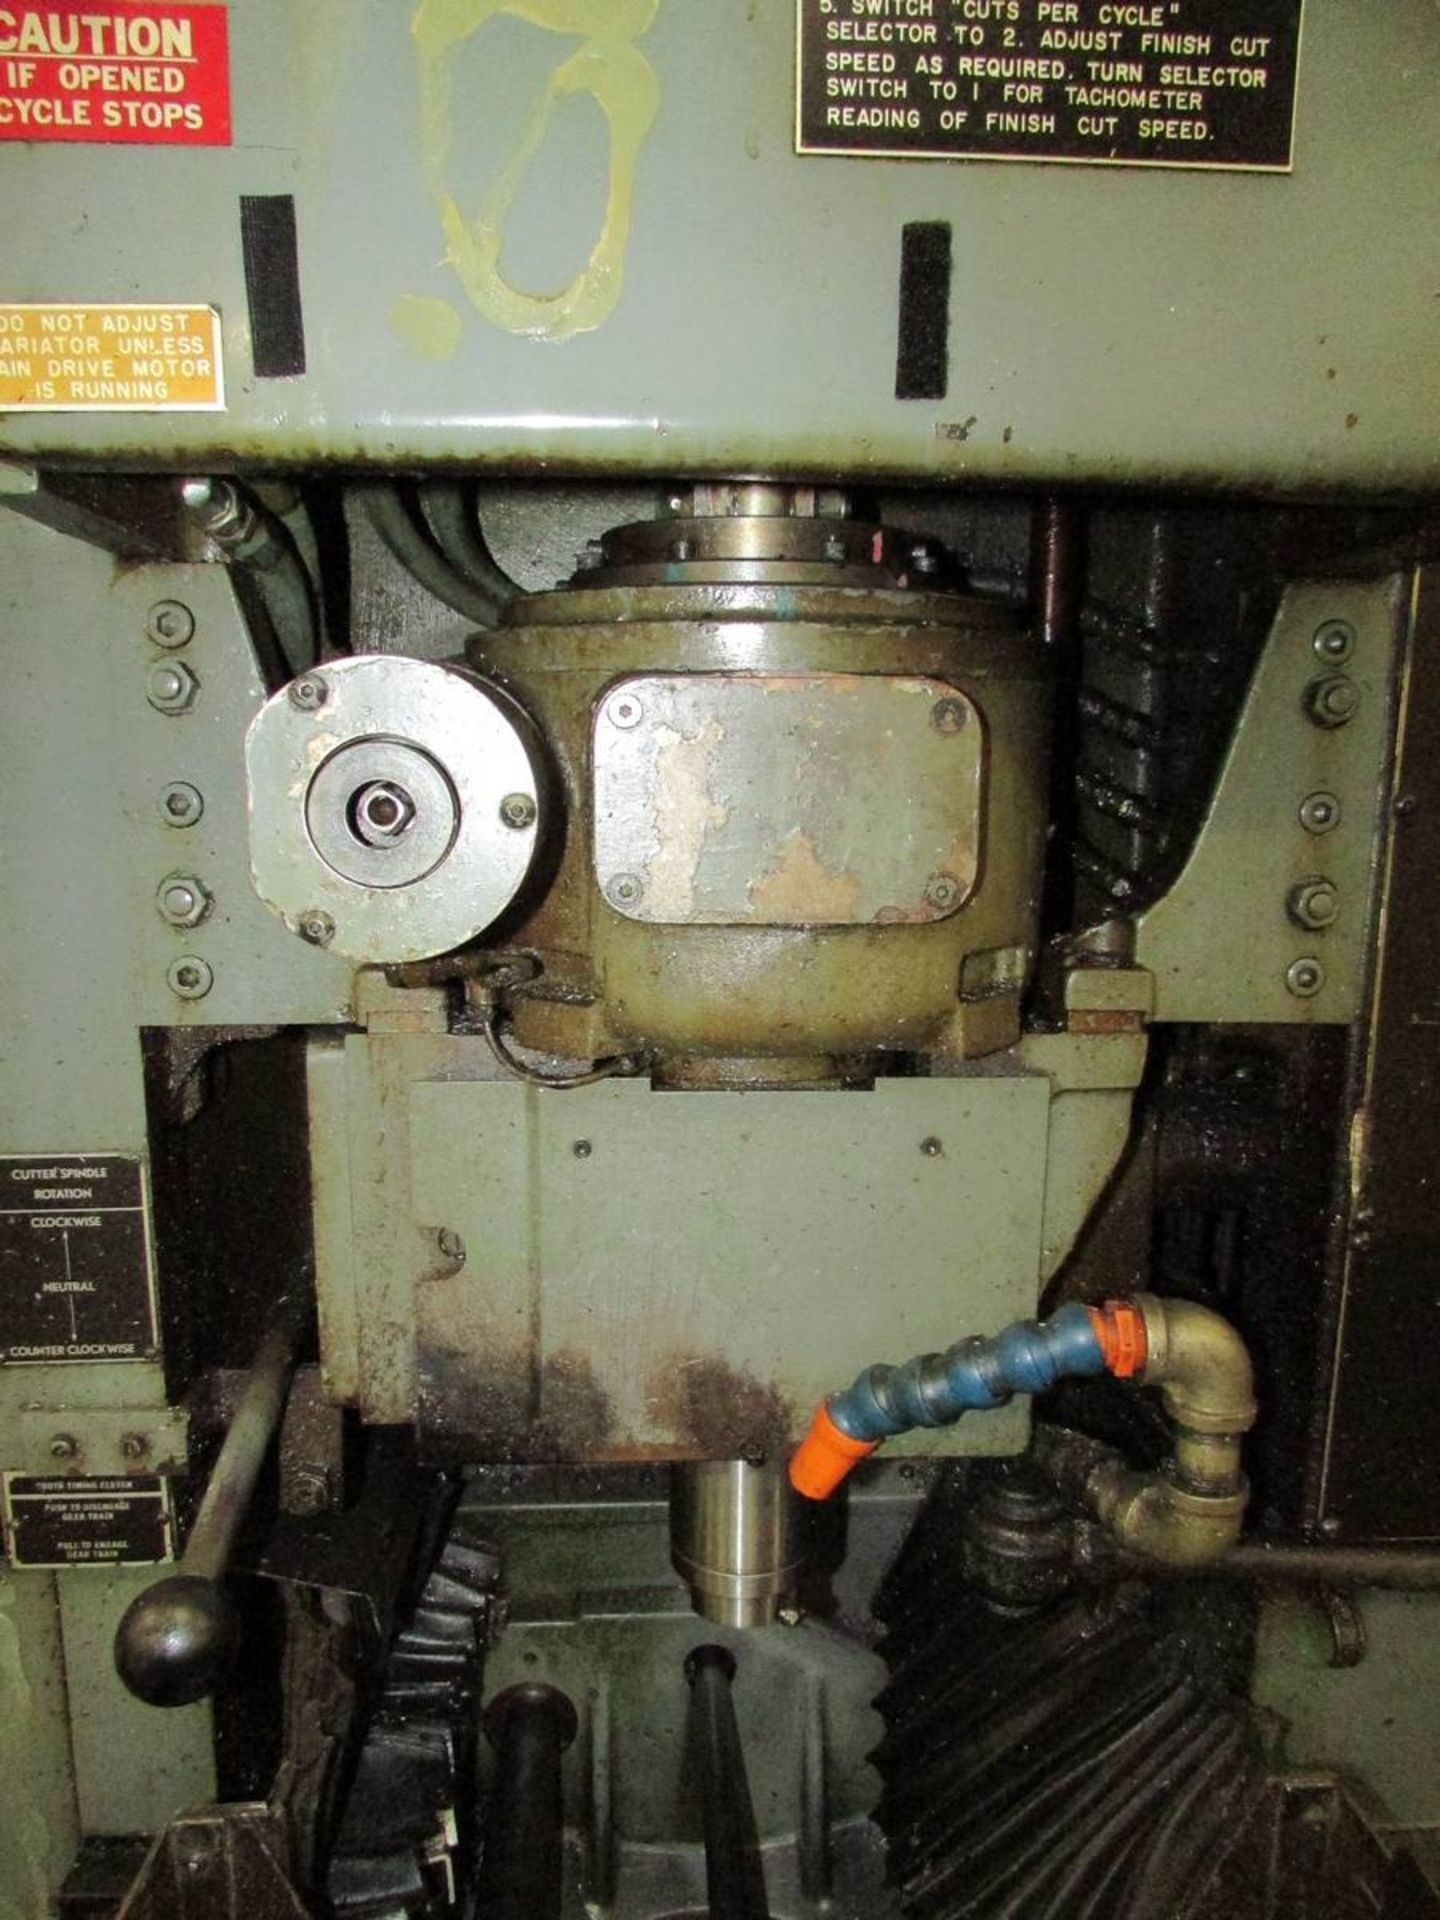 Barber Colman 18-04 Vertical Gear Shaping Machine - Image 4 of 19